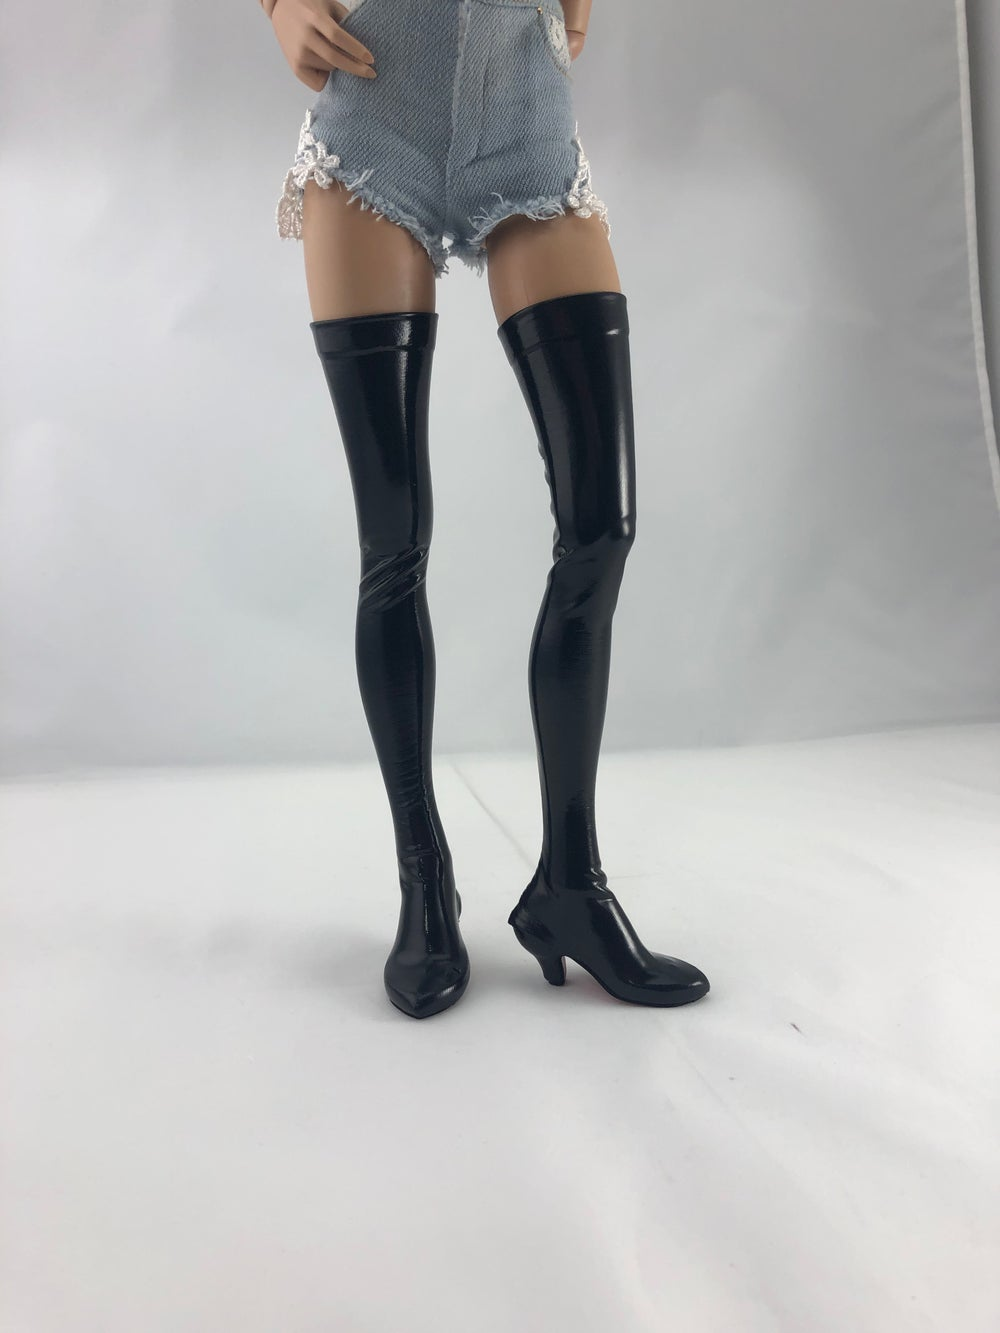 Damaged Black Patent Thigh High Boots Red Soles: Minifee